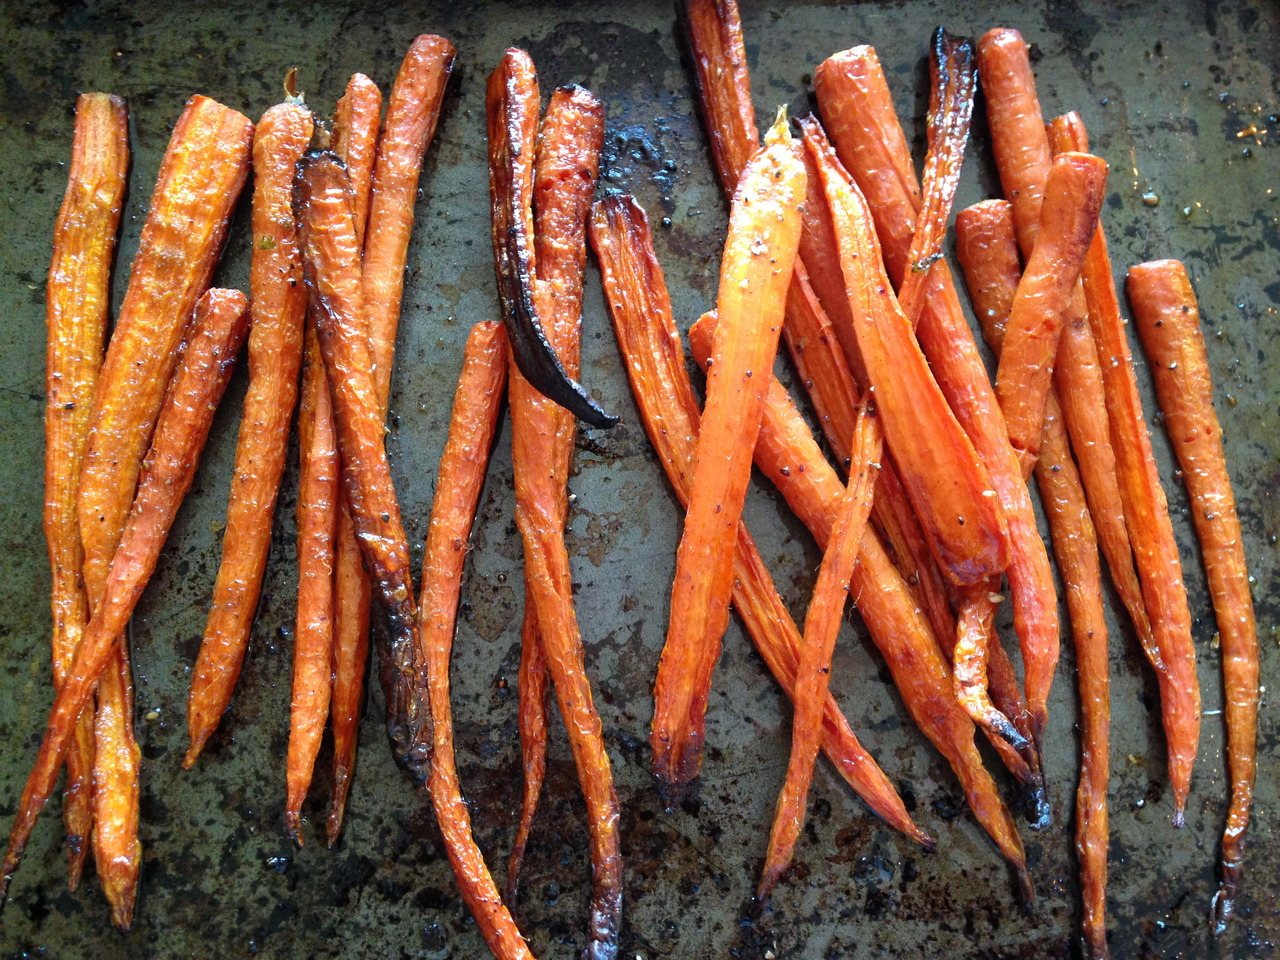 Roasted Carrots with Baby Kale and Cumin Spiked Yogurt - AliLarter.com